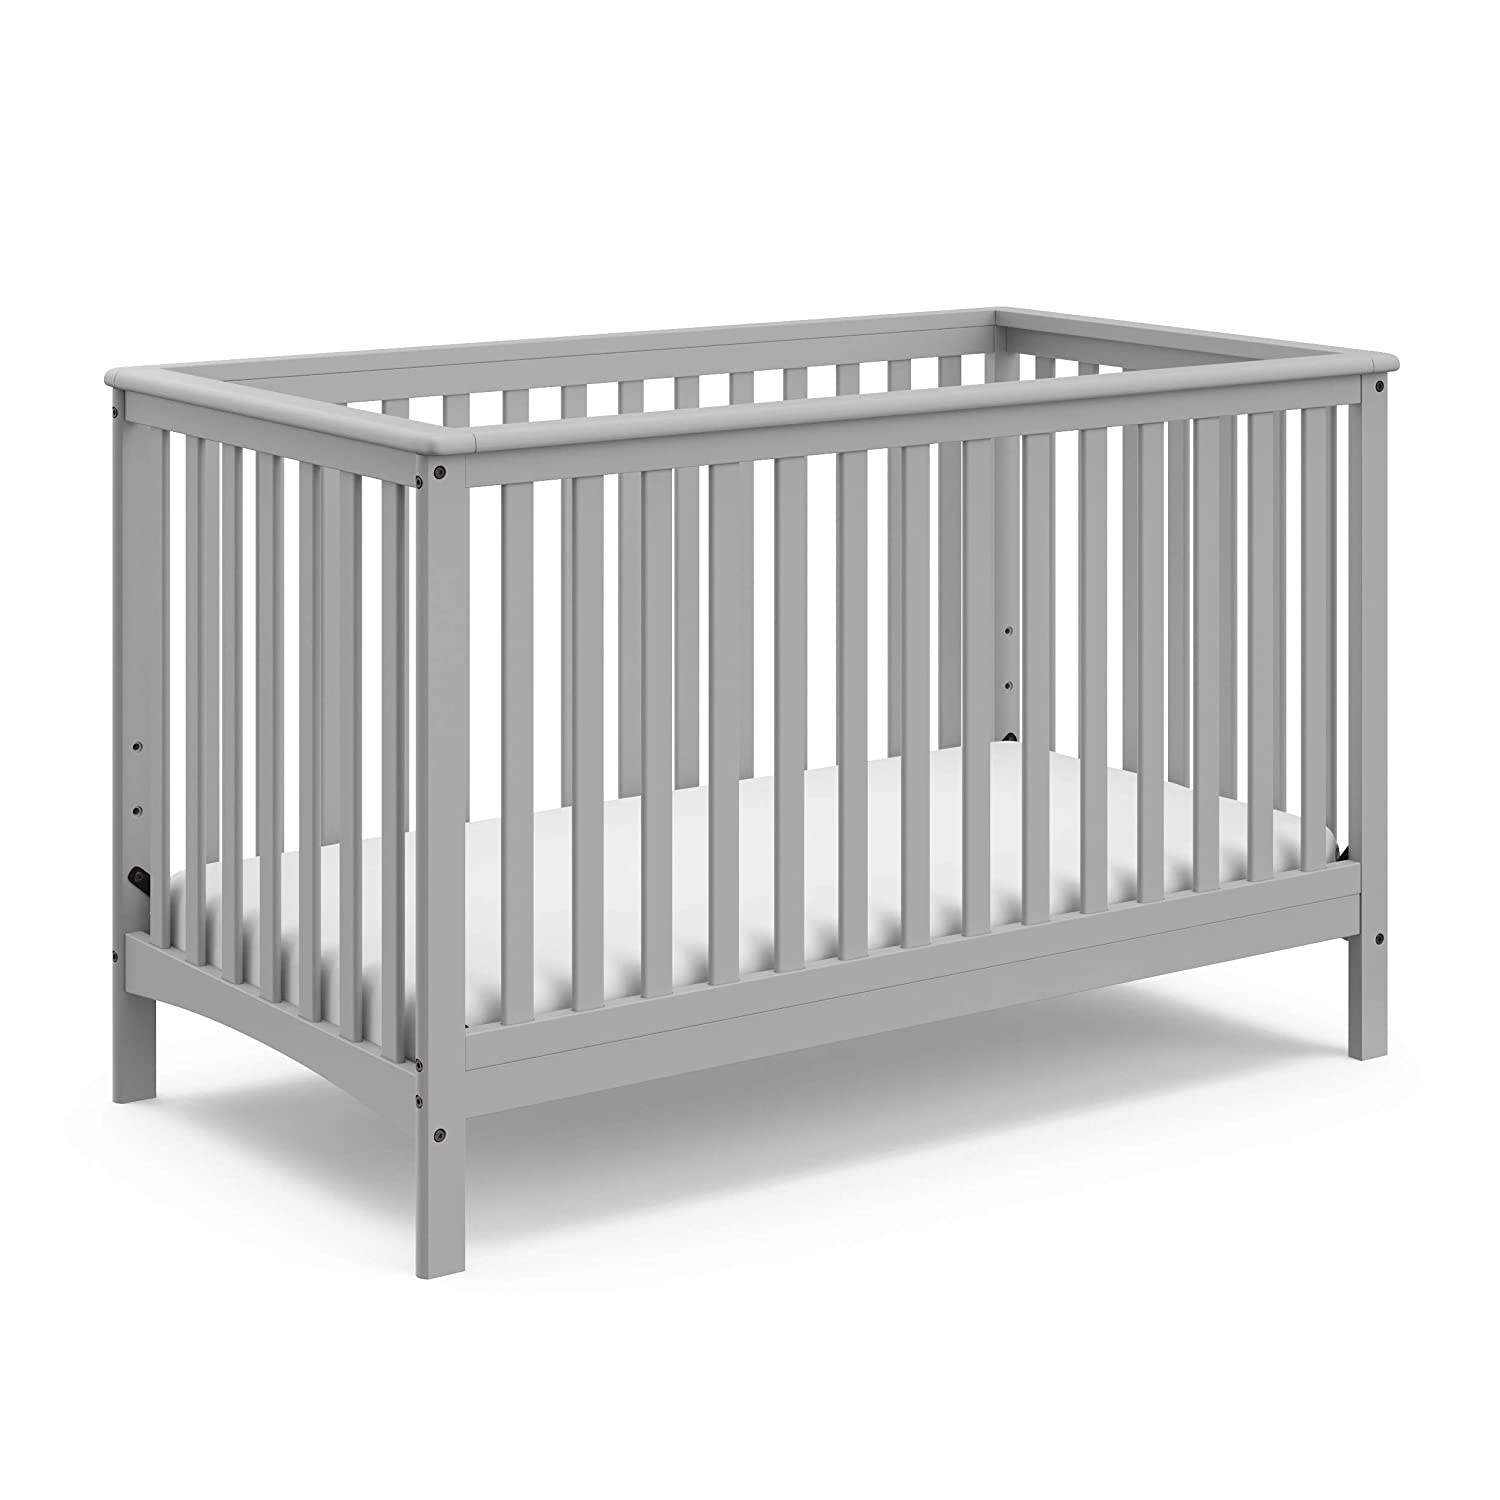 Marvelous Storkcraft Hillcrest Fixed Side Convertible Crib Pebble Gray Pdpeps Interior Chair Design Pdpepsorg